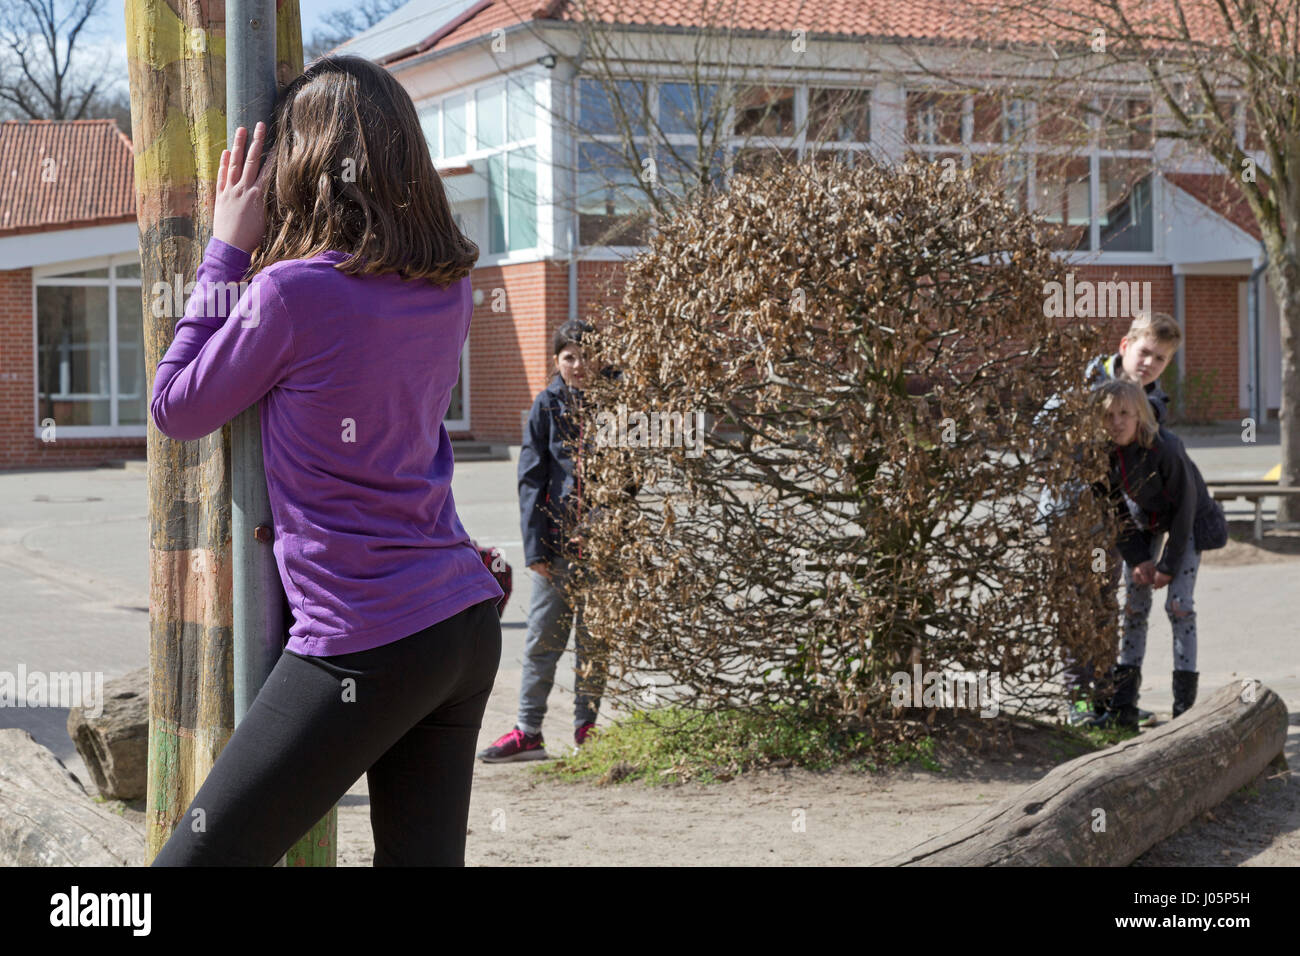 pupils at primary school playing hide and seek during break, Lower Saxony, Germany - Stock Image